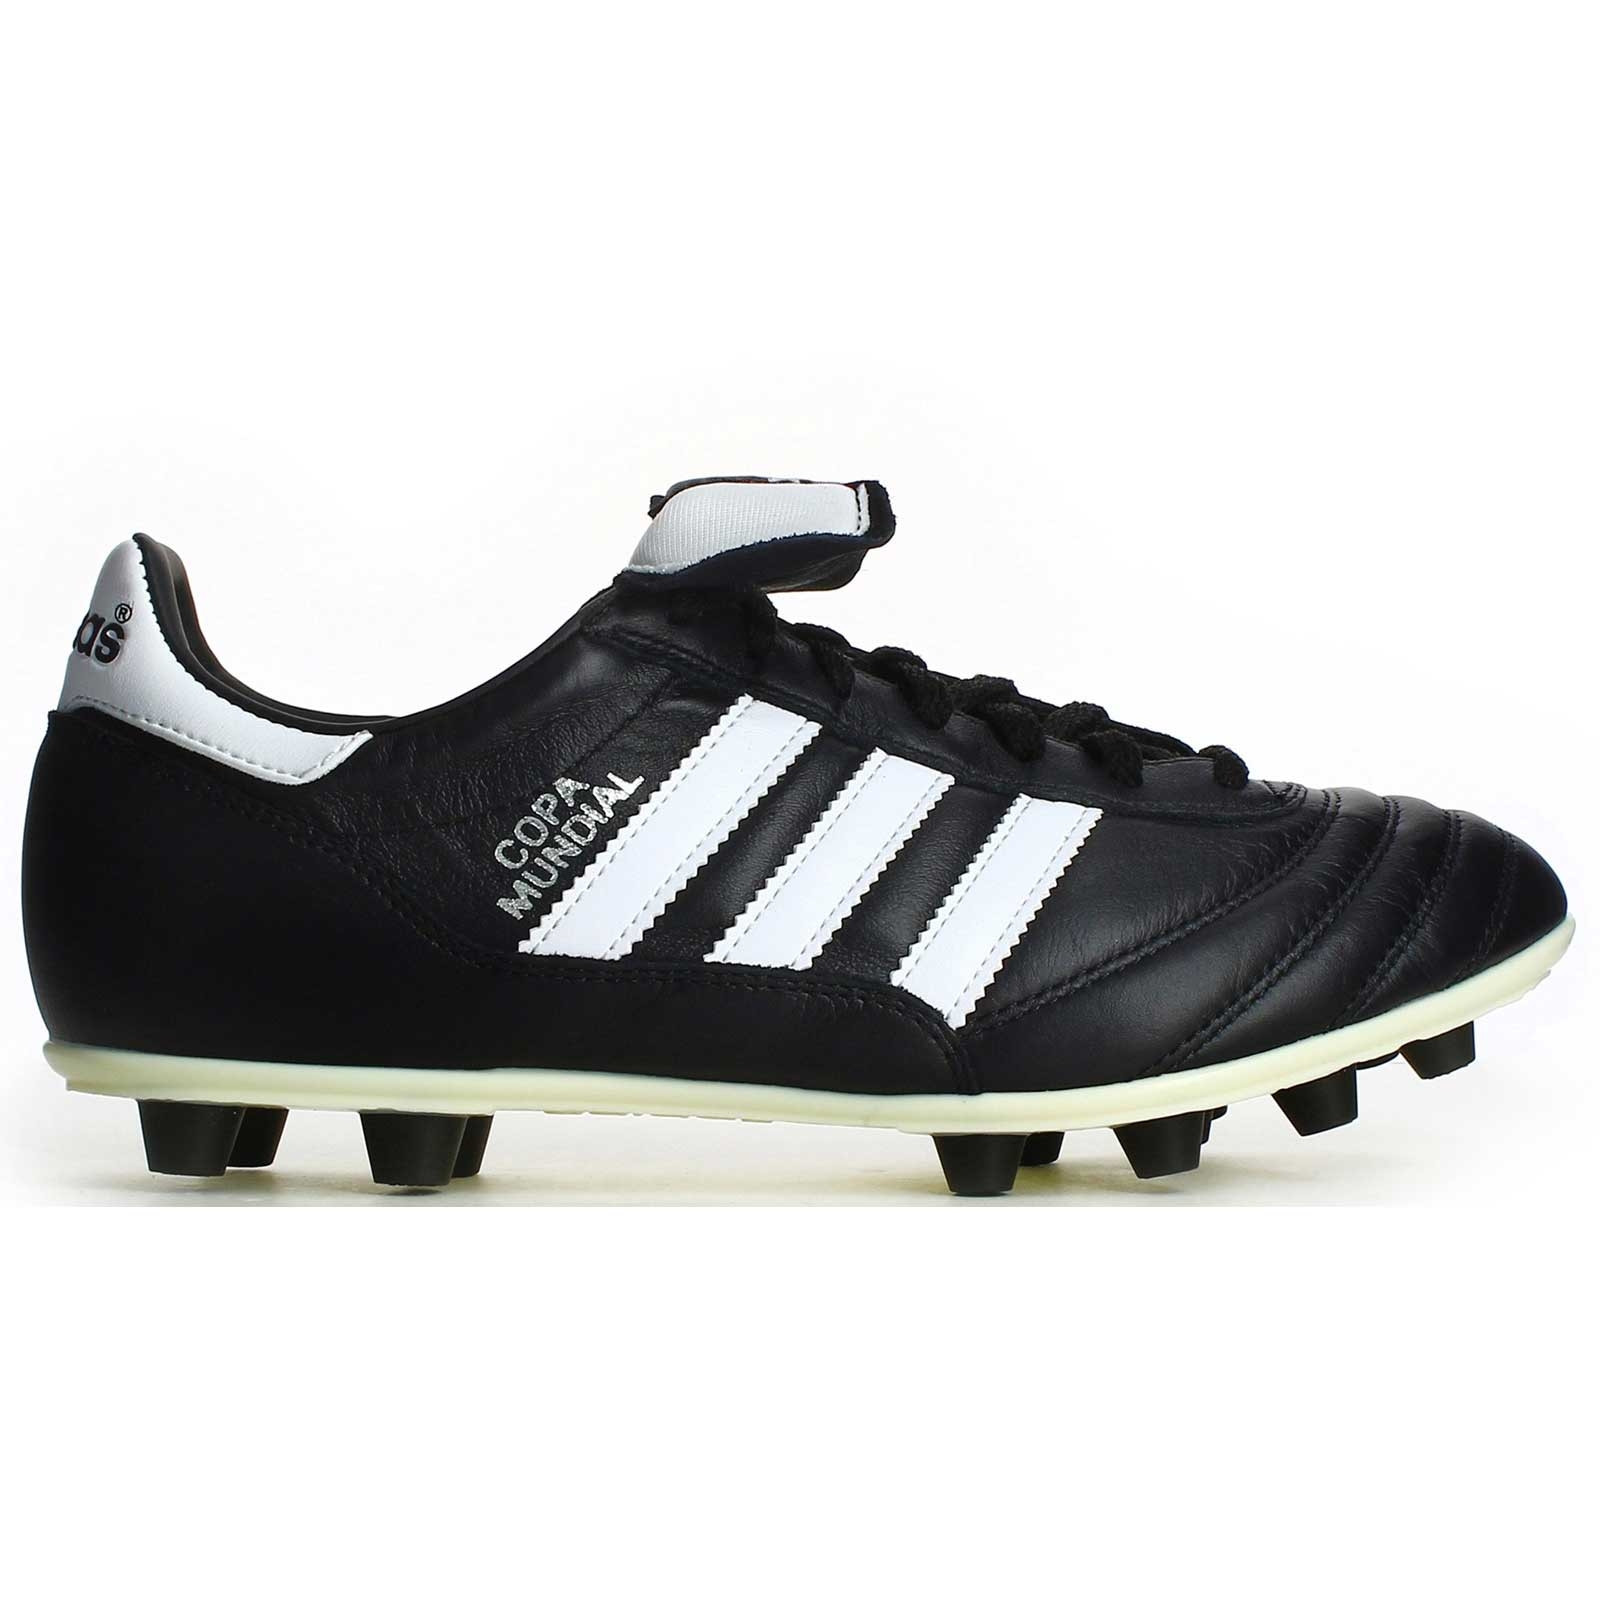 newest collection f6d10 52734  0 1 015110a imagen-de-las-botas-de-futbol. • Sobrio diseño en color negro  ...